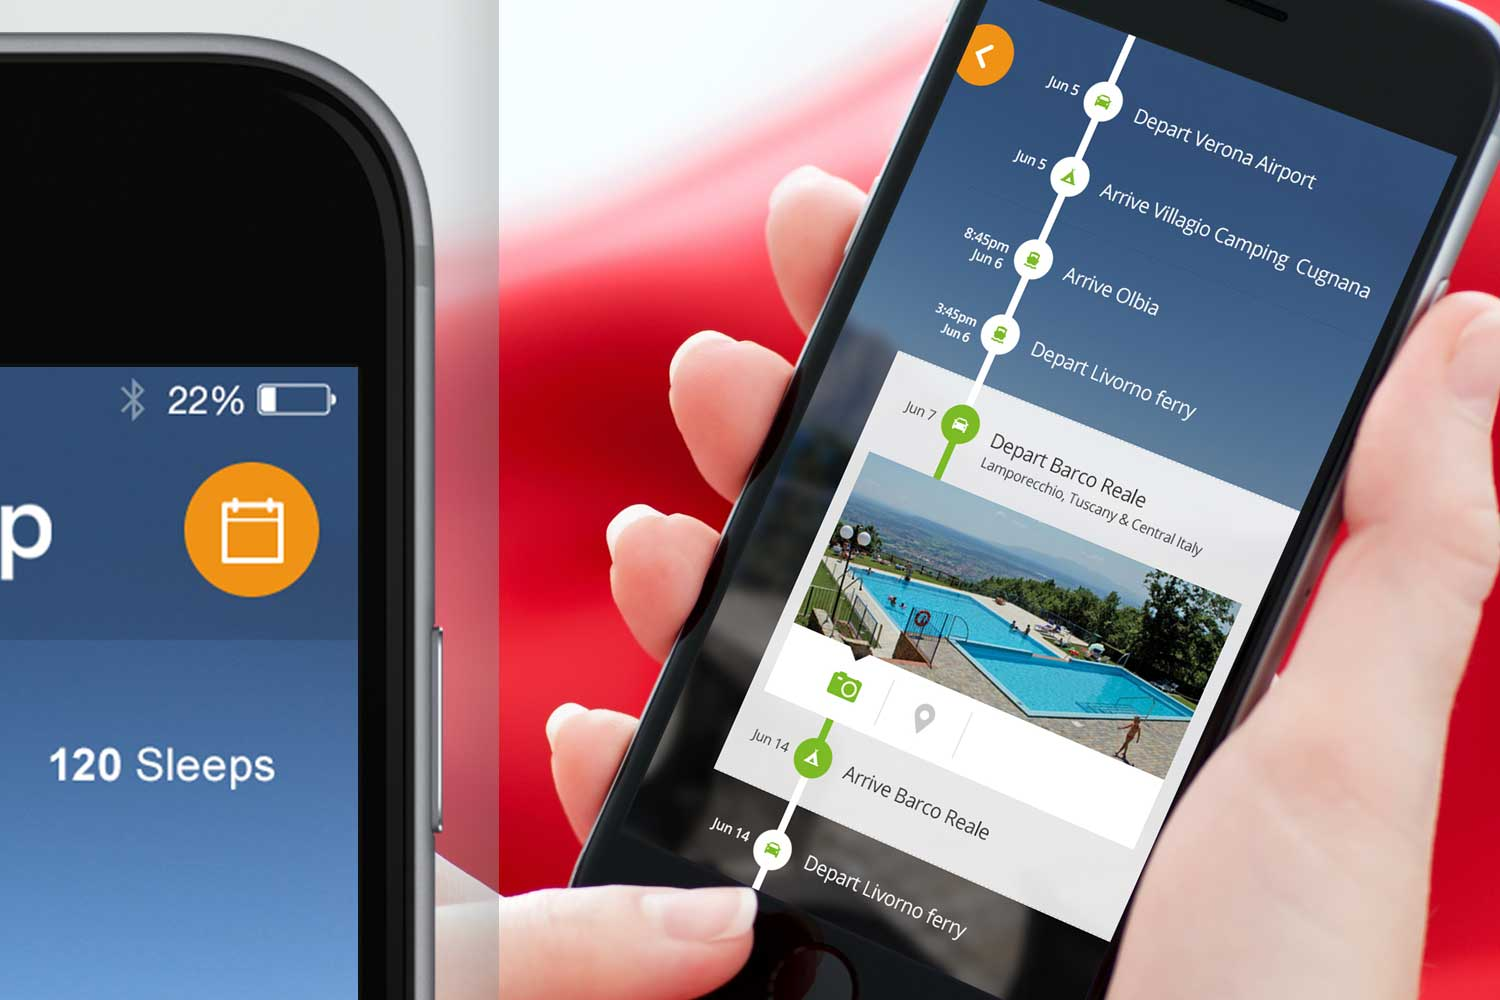 The customer can organise all timings and events on the itinerary planner.